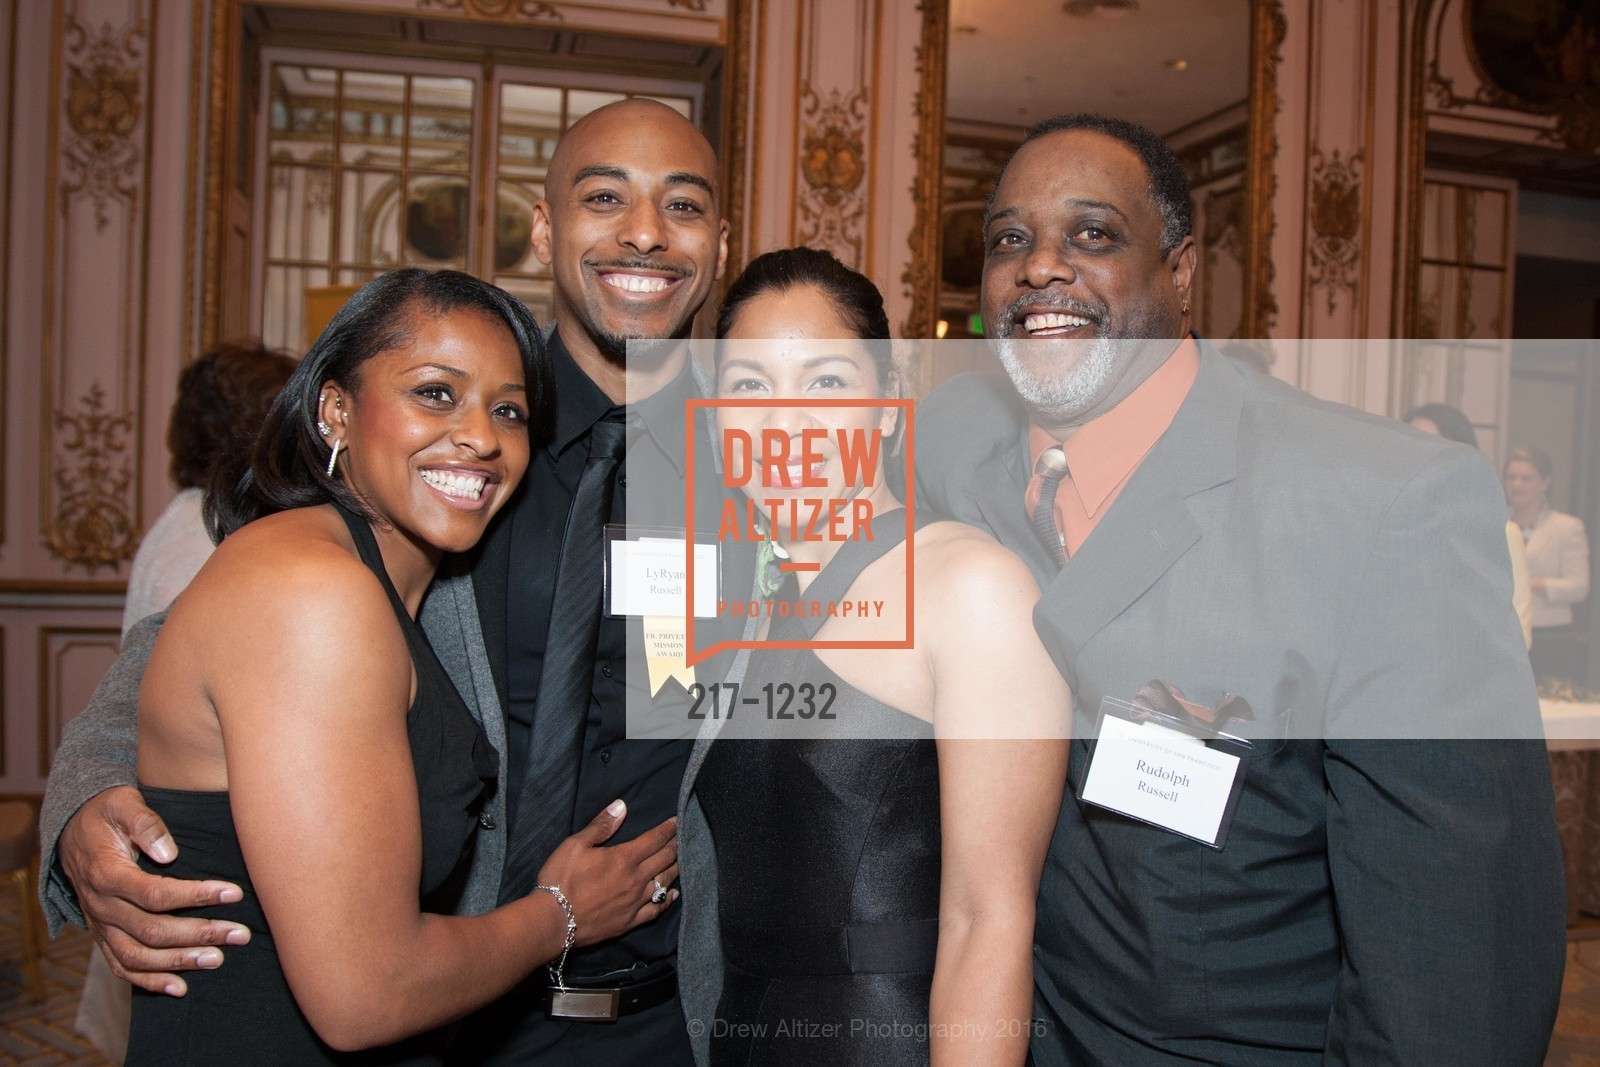 Toni Russell, LyRyan Russell, Azizza Jones, Rudolph Russell, Photo #217-1232